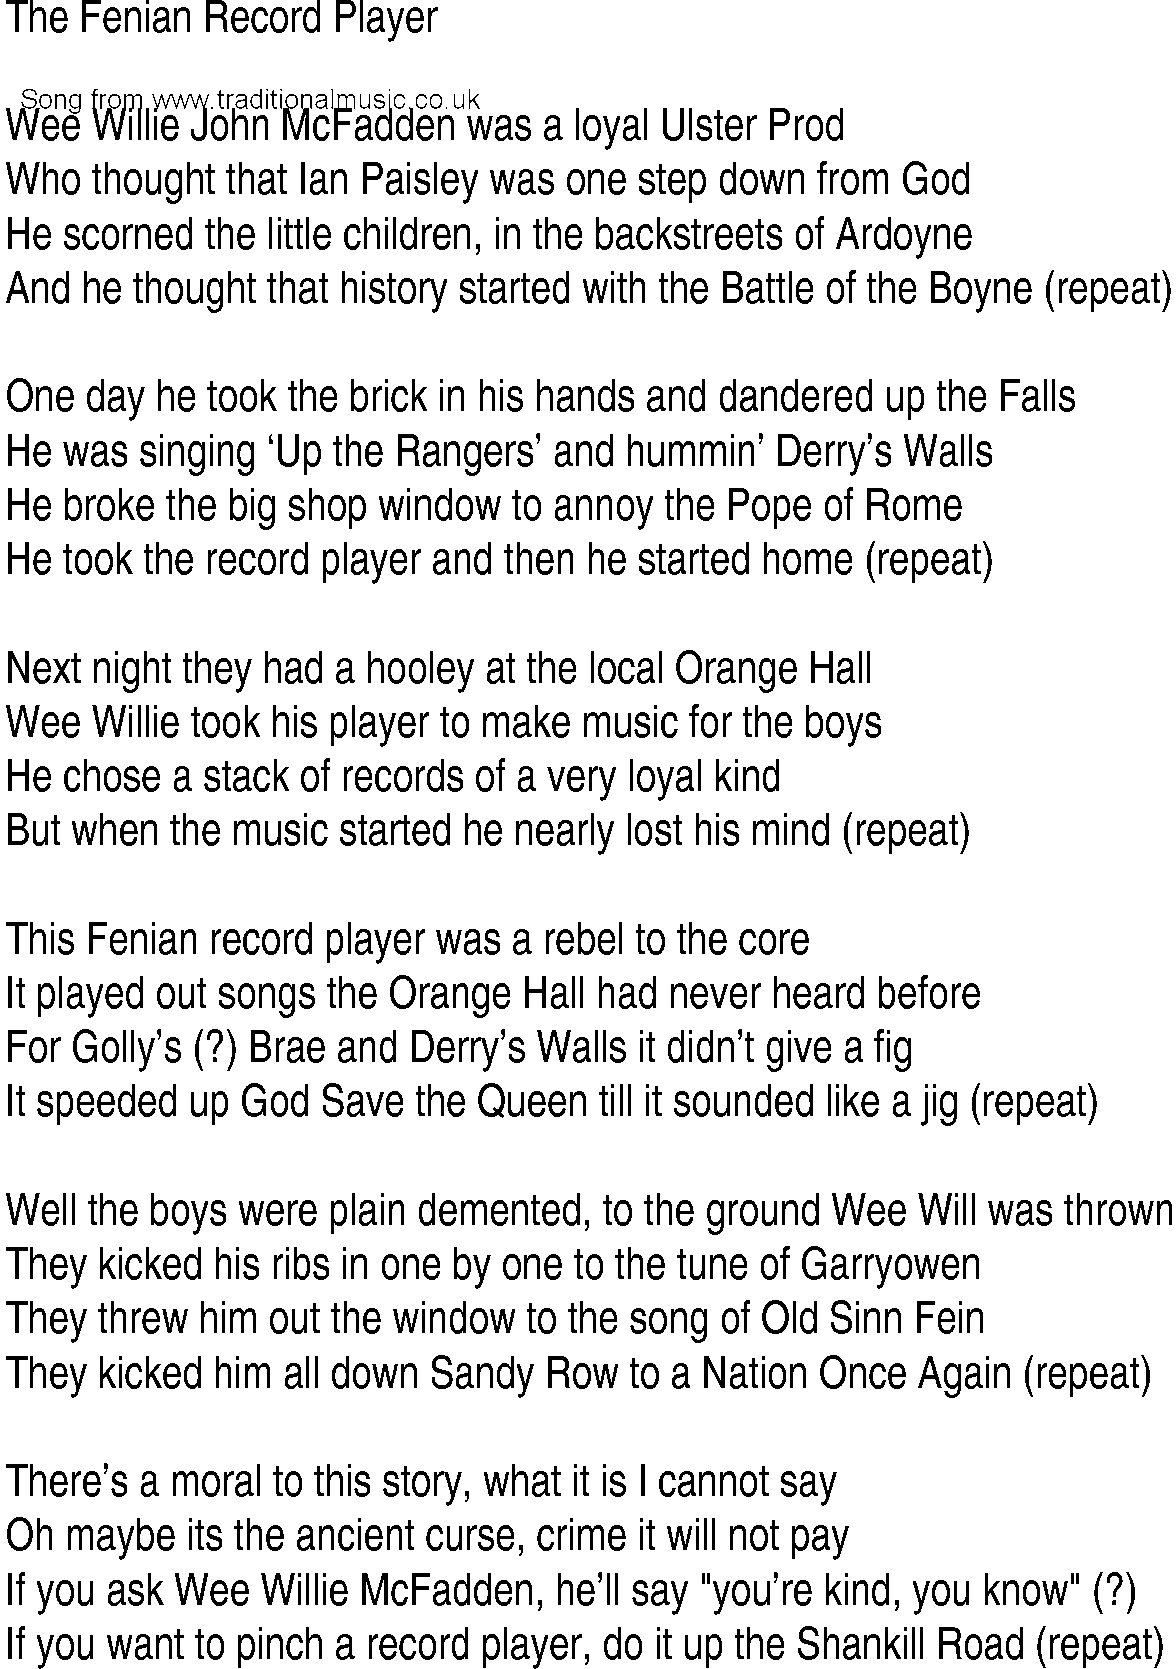 Irish Music, Song and Ballad Lyrics for: Fenian Record Player